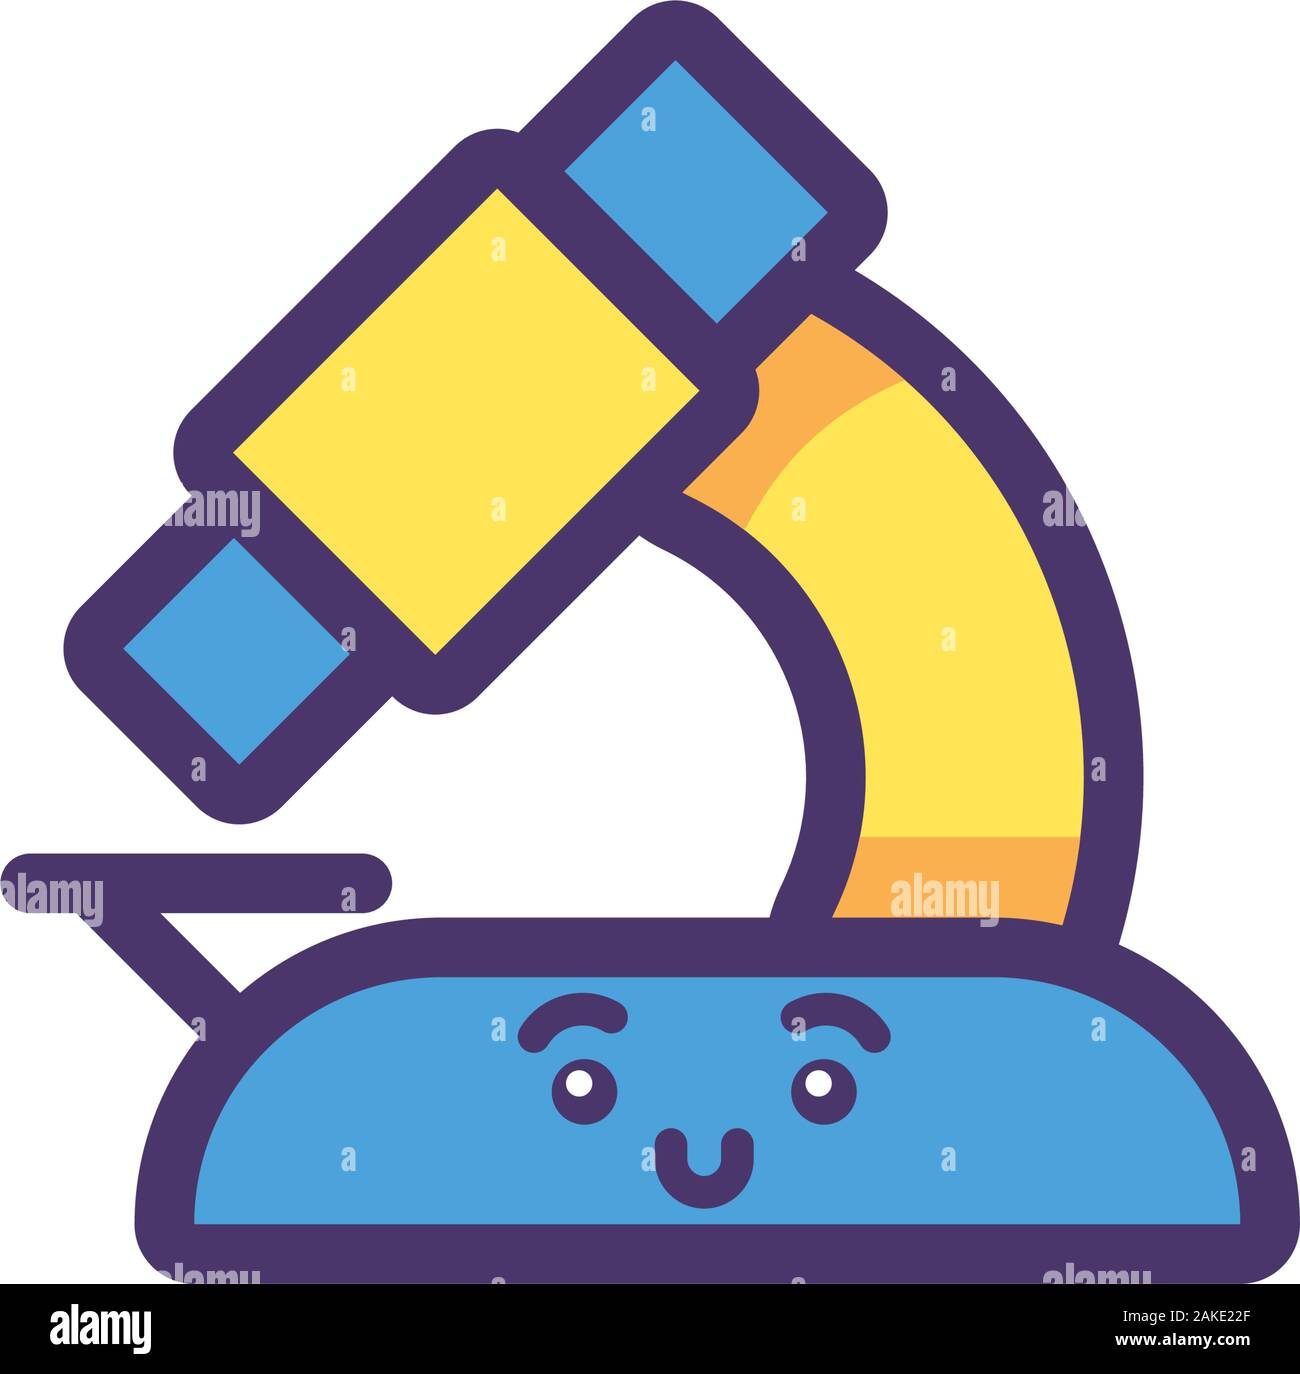 microscope cartoon design kawaii school expression cute character funny and emoticon theme vector illustration stock vector image art alamy https www alamy com microscope cartoon design kawaii school expression cute character funny and emoticon theme vector illustration image338984423 html